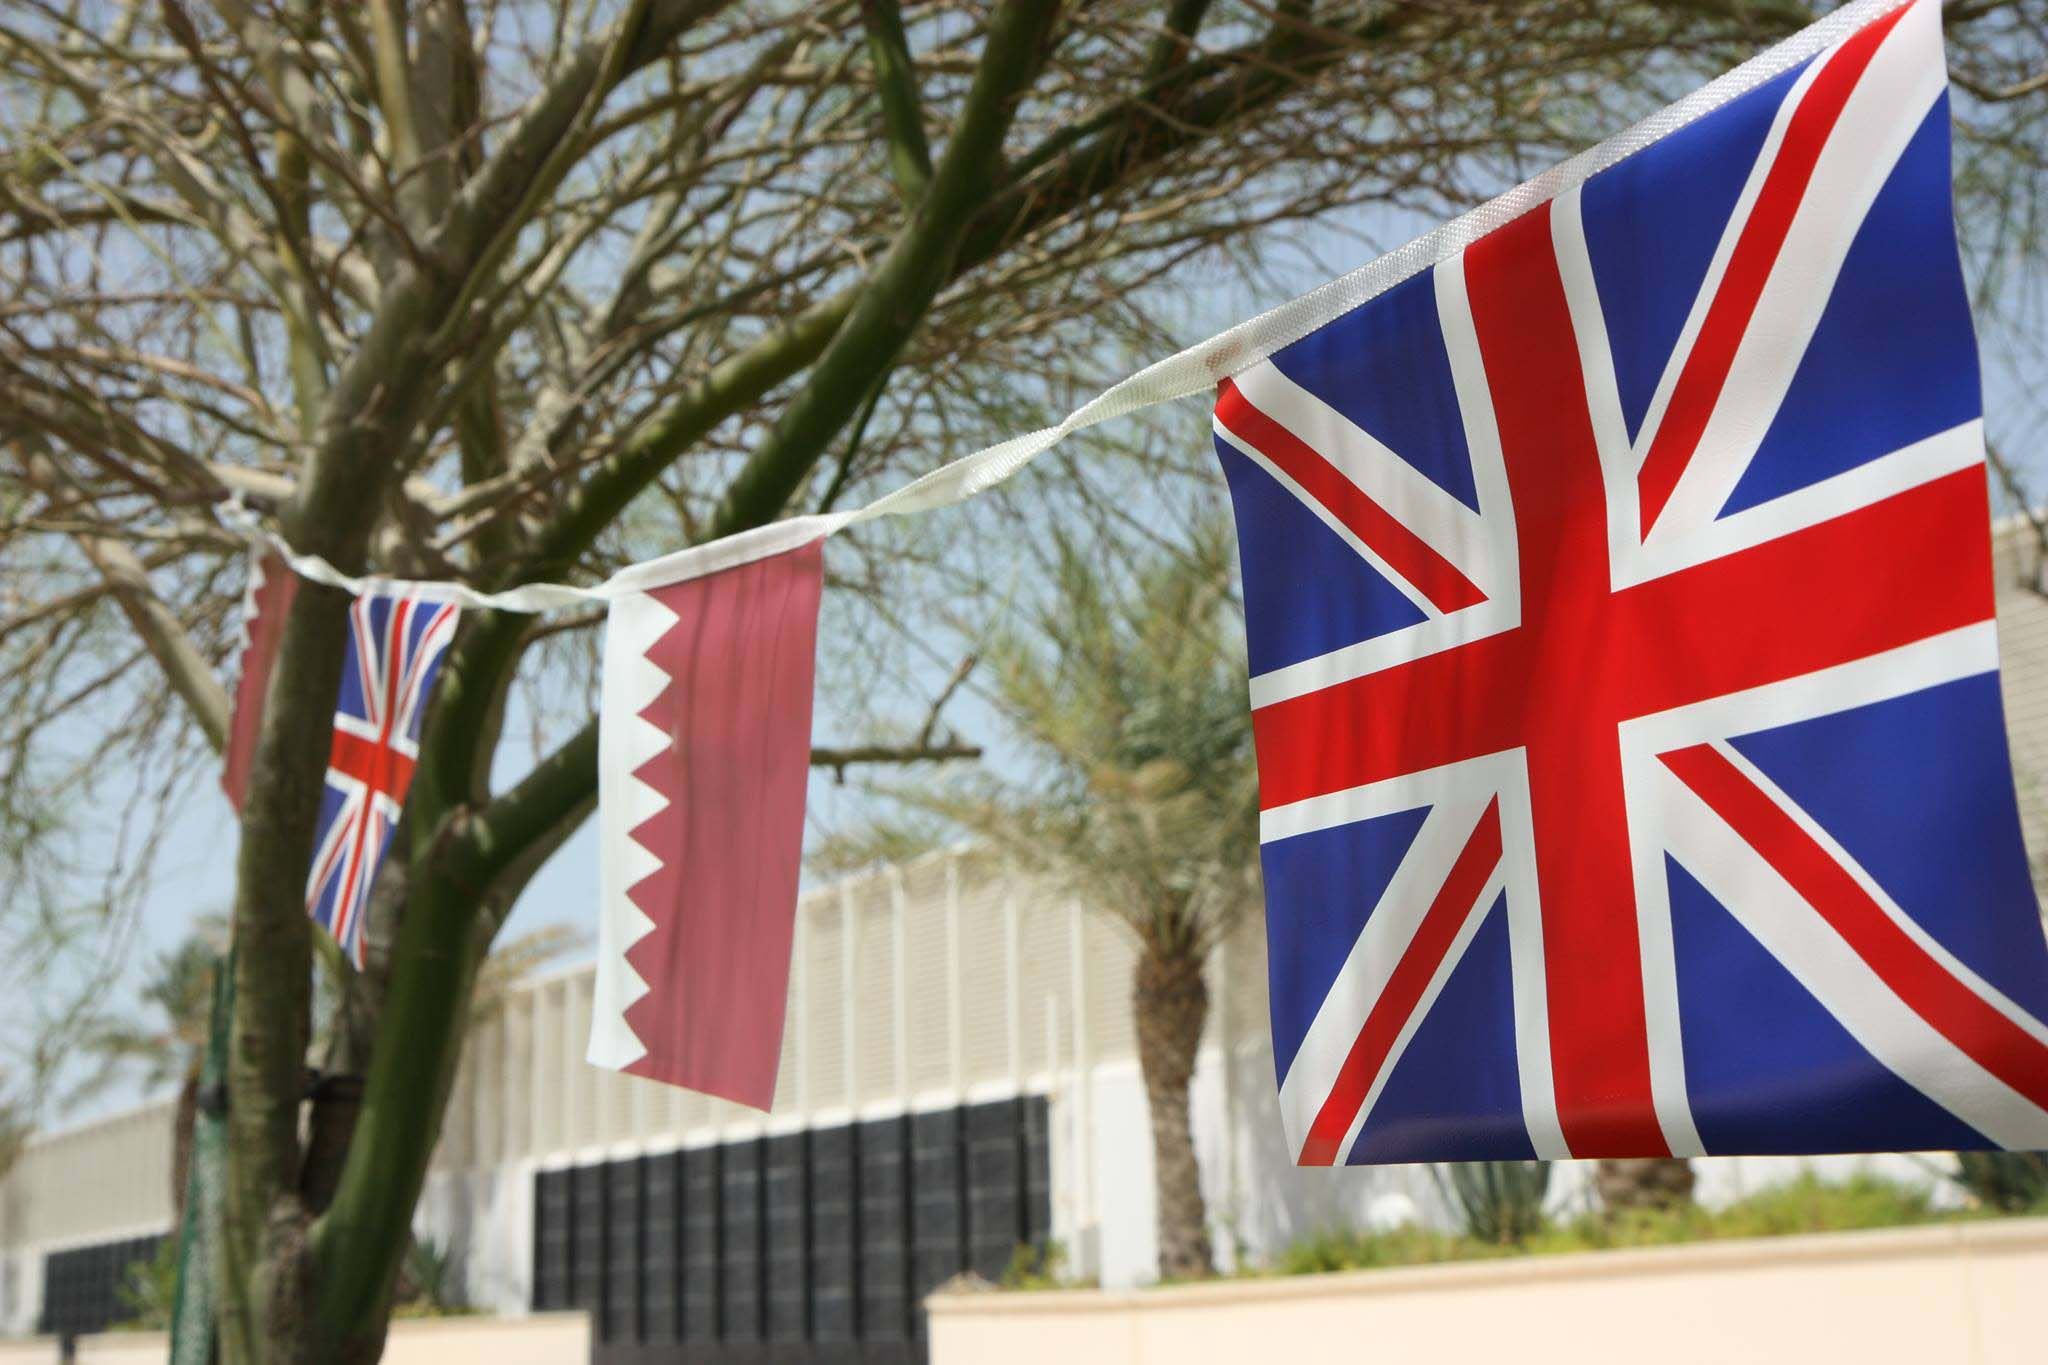 UK and Qatar flags